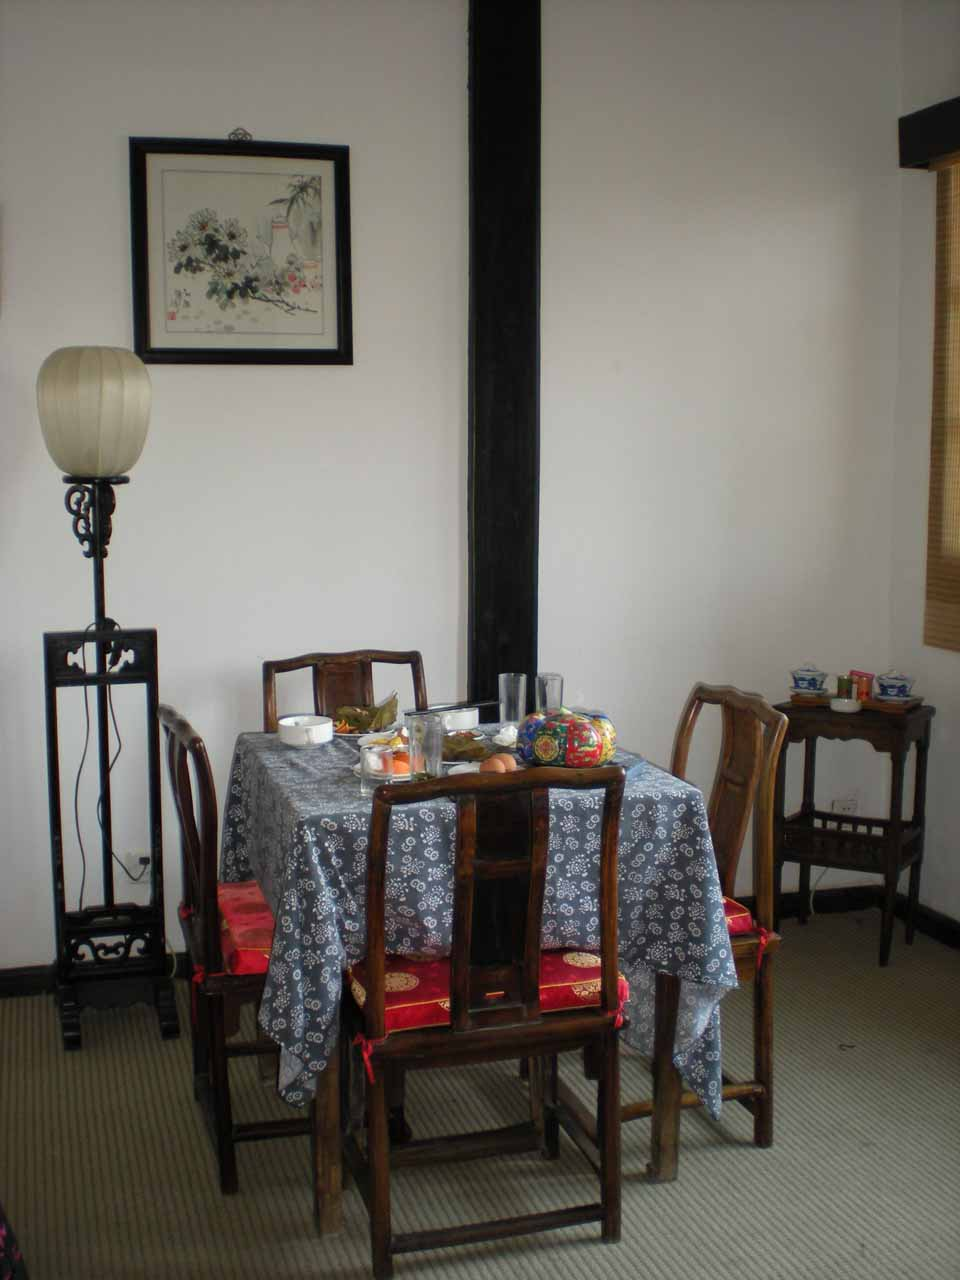 Inside our accommodation at Suzhou